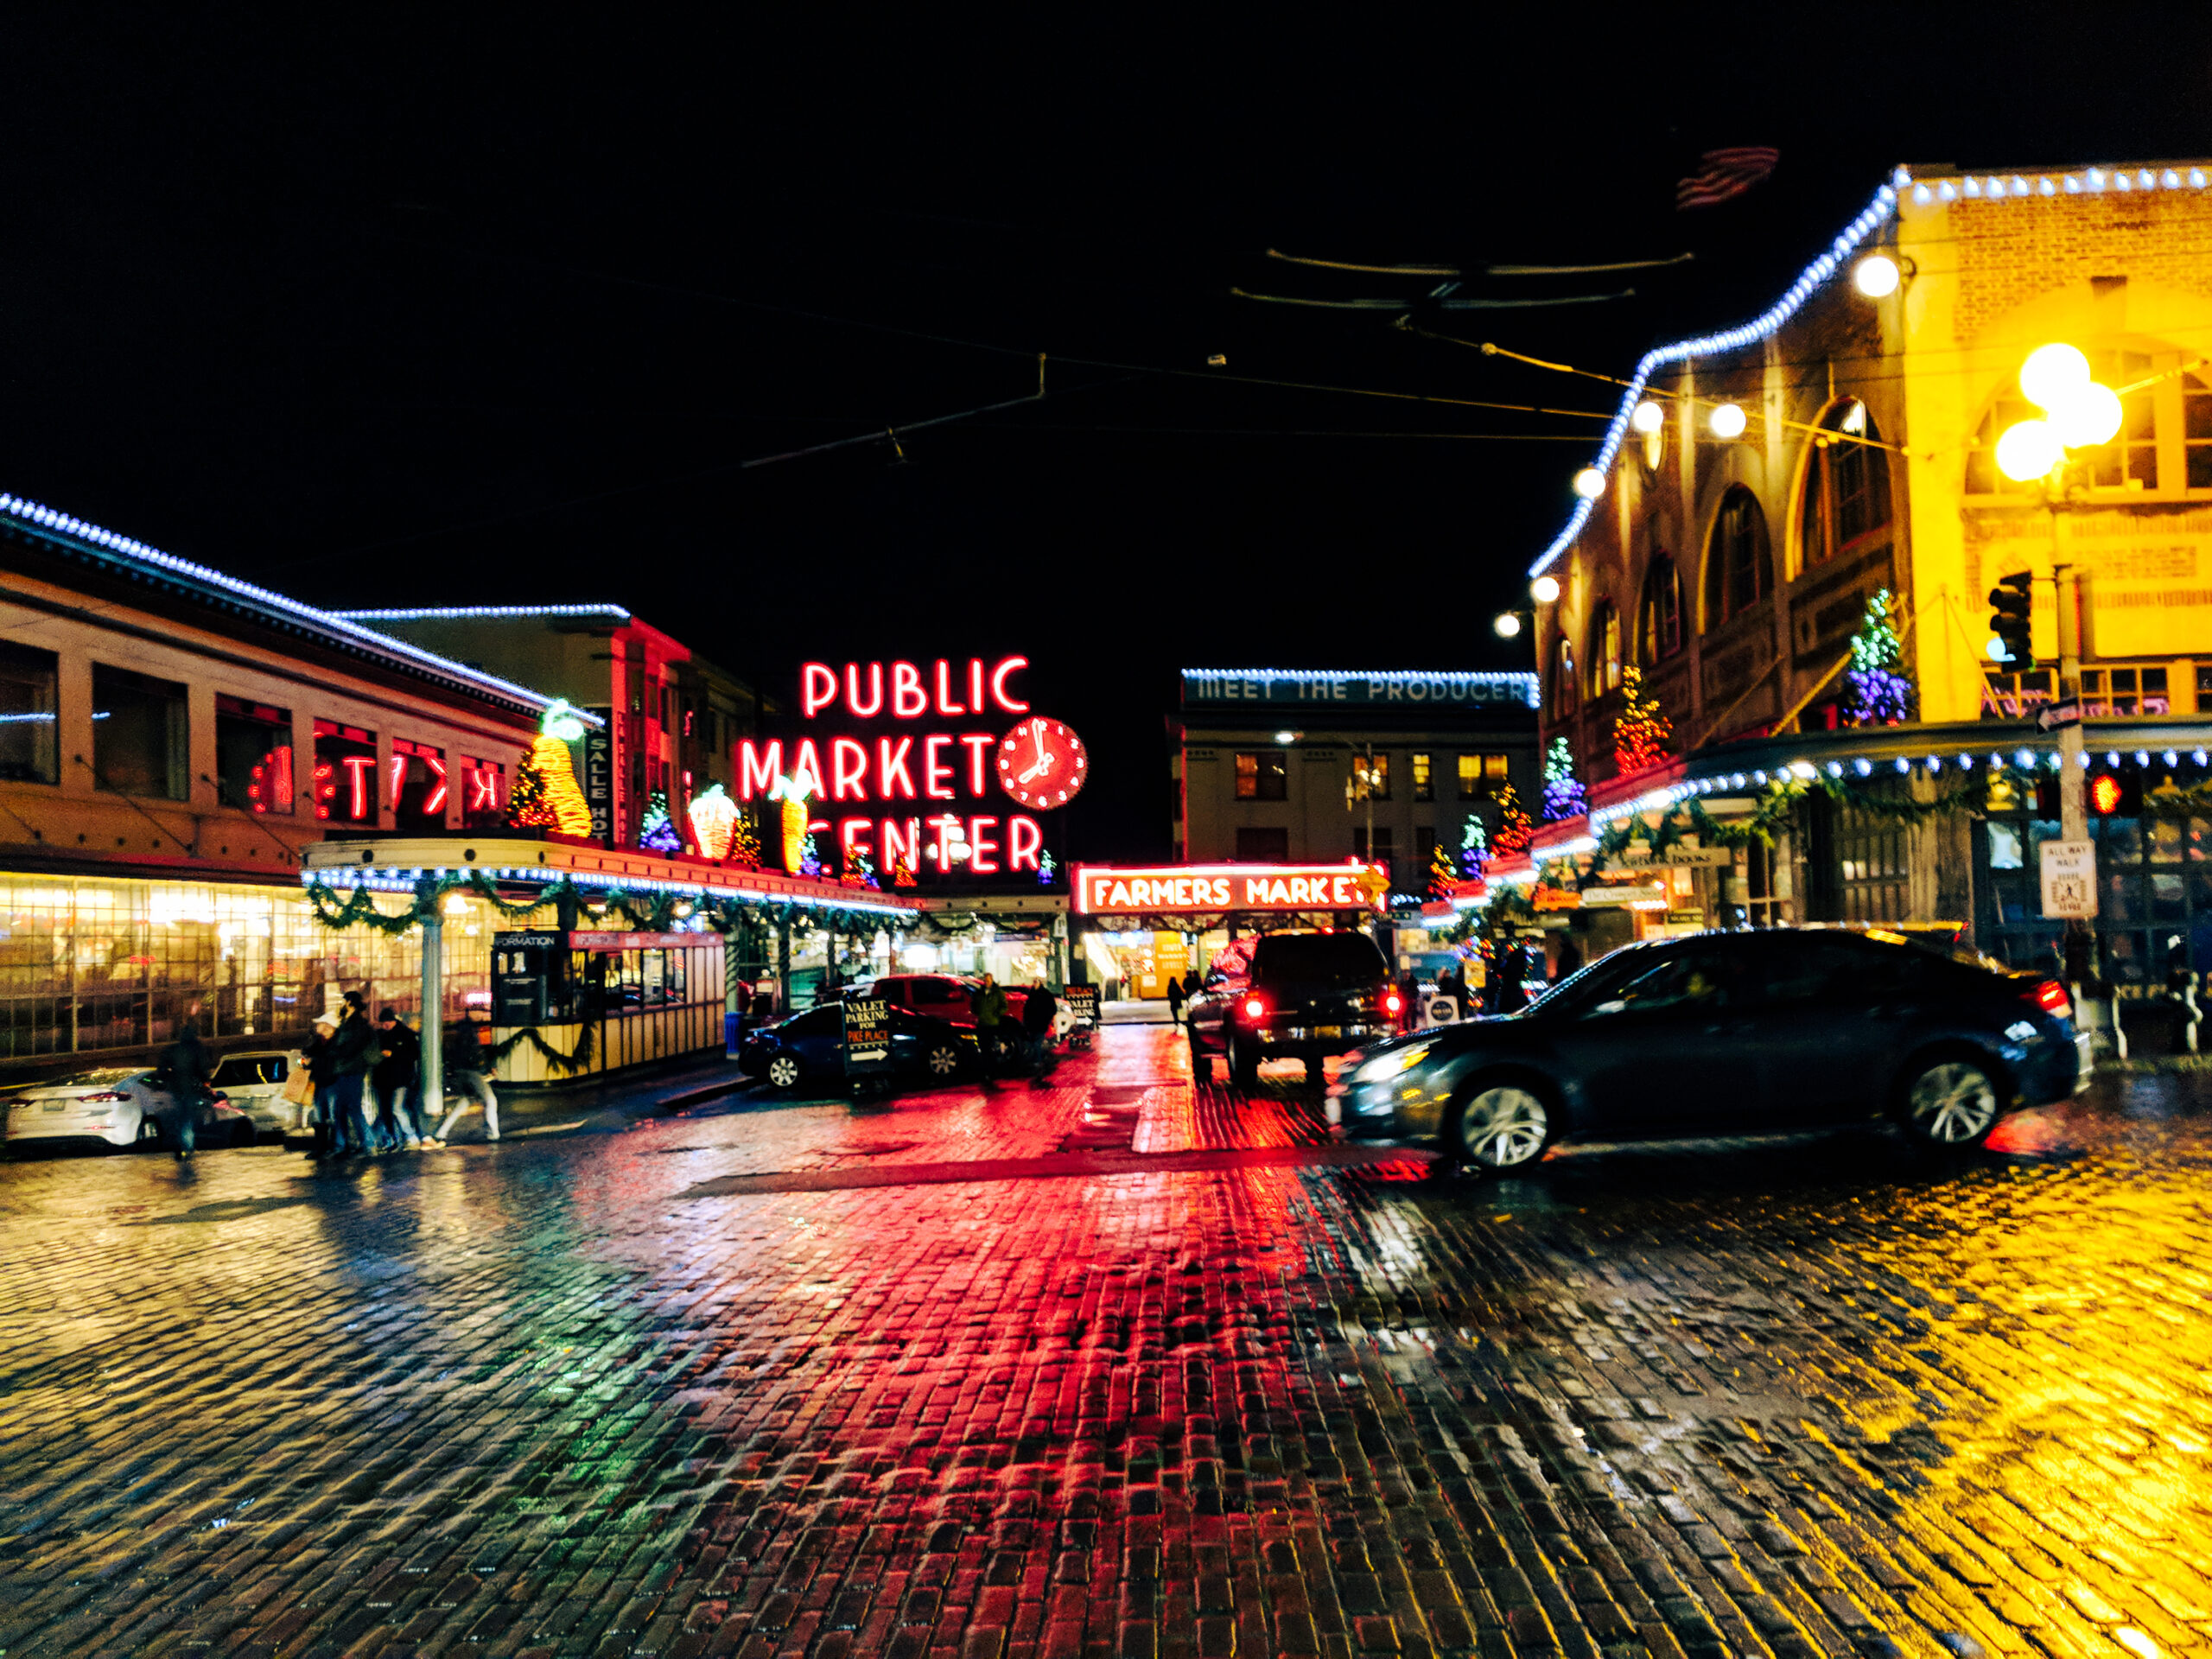 Pike place market at christmas after dark, with car driving past.